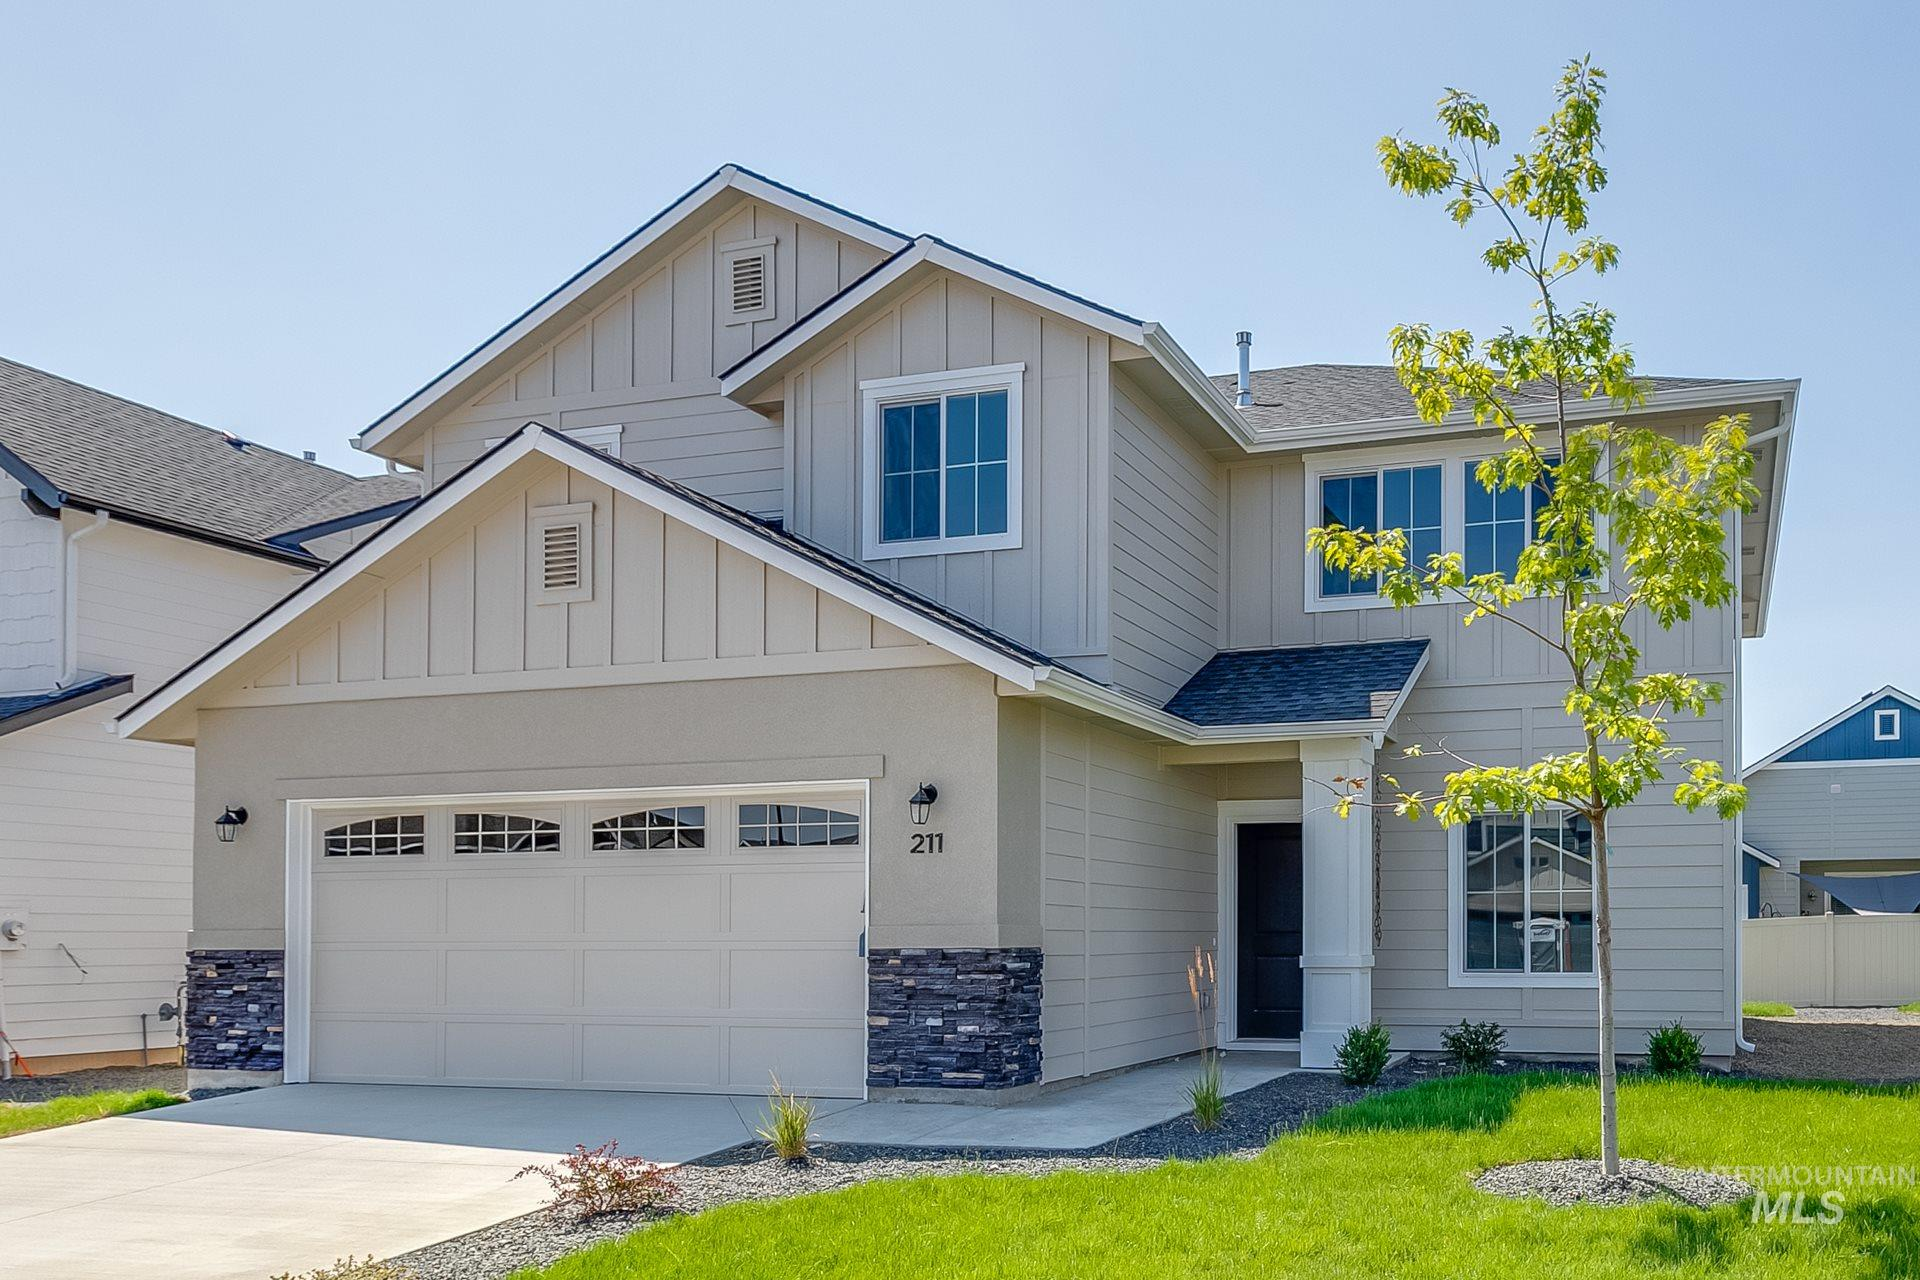 4925 W Grand Rapids Dr, Meridian, Idaho 83646, 5 Bedrooms, 2.5 Bathrooms, Residential For Sale, Price $512,480, 98788005